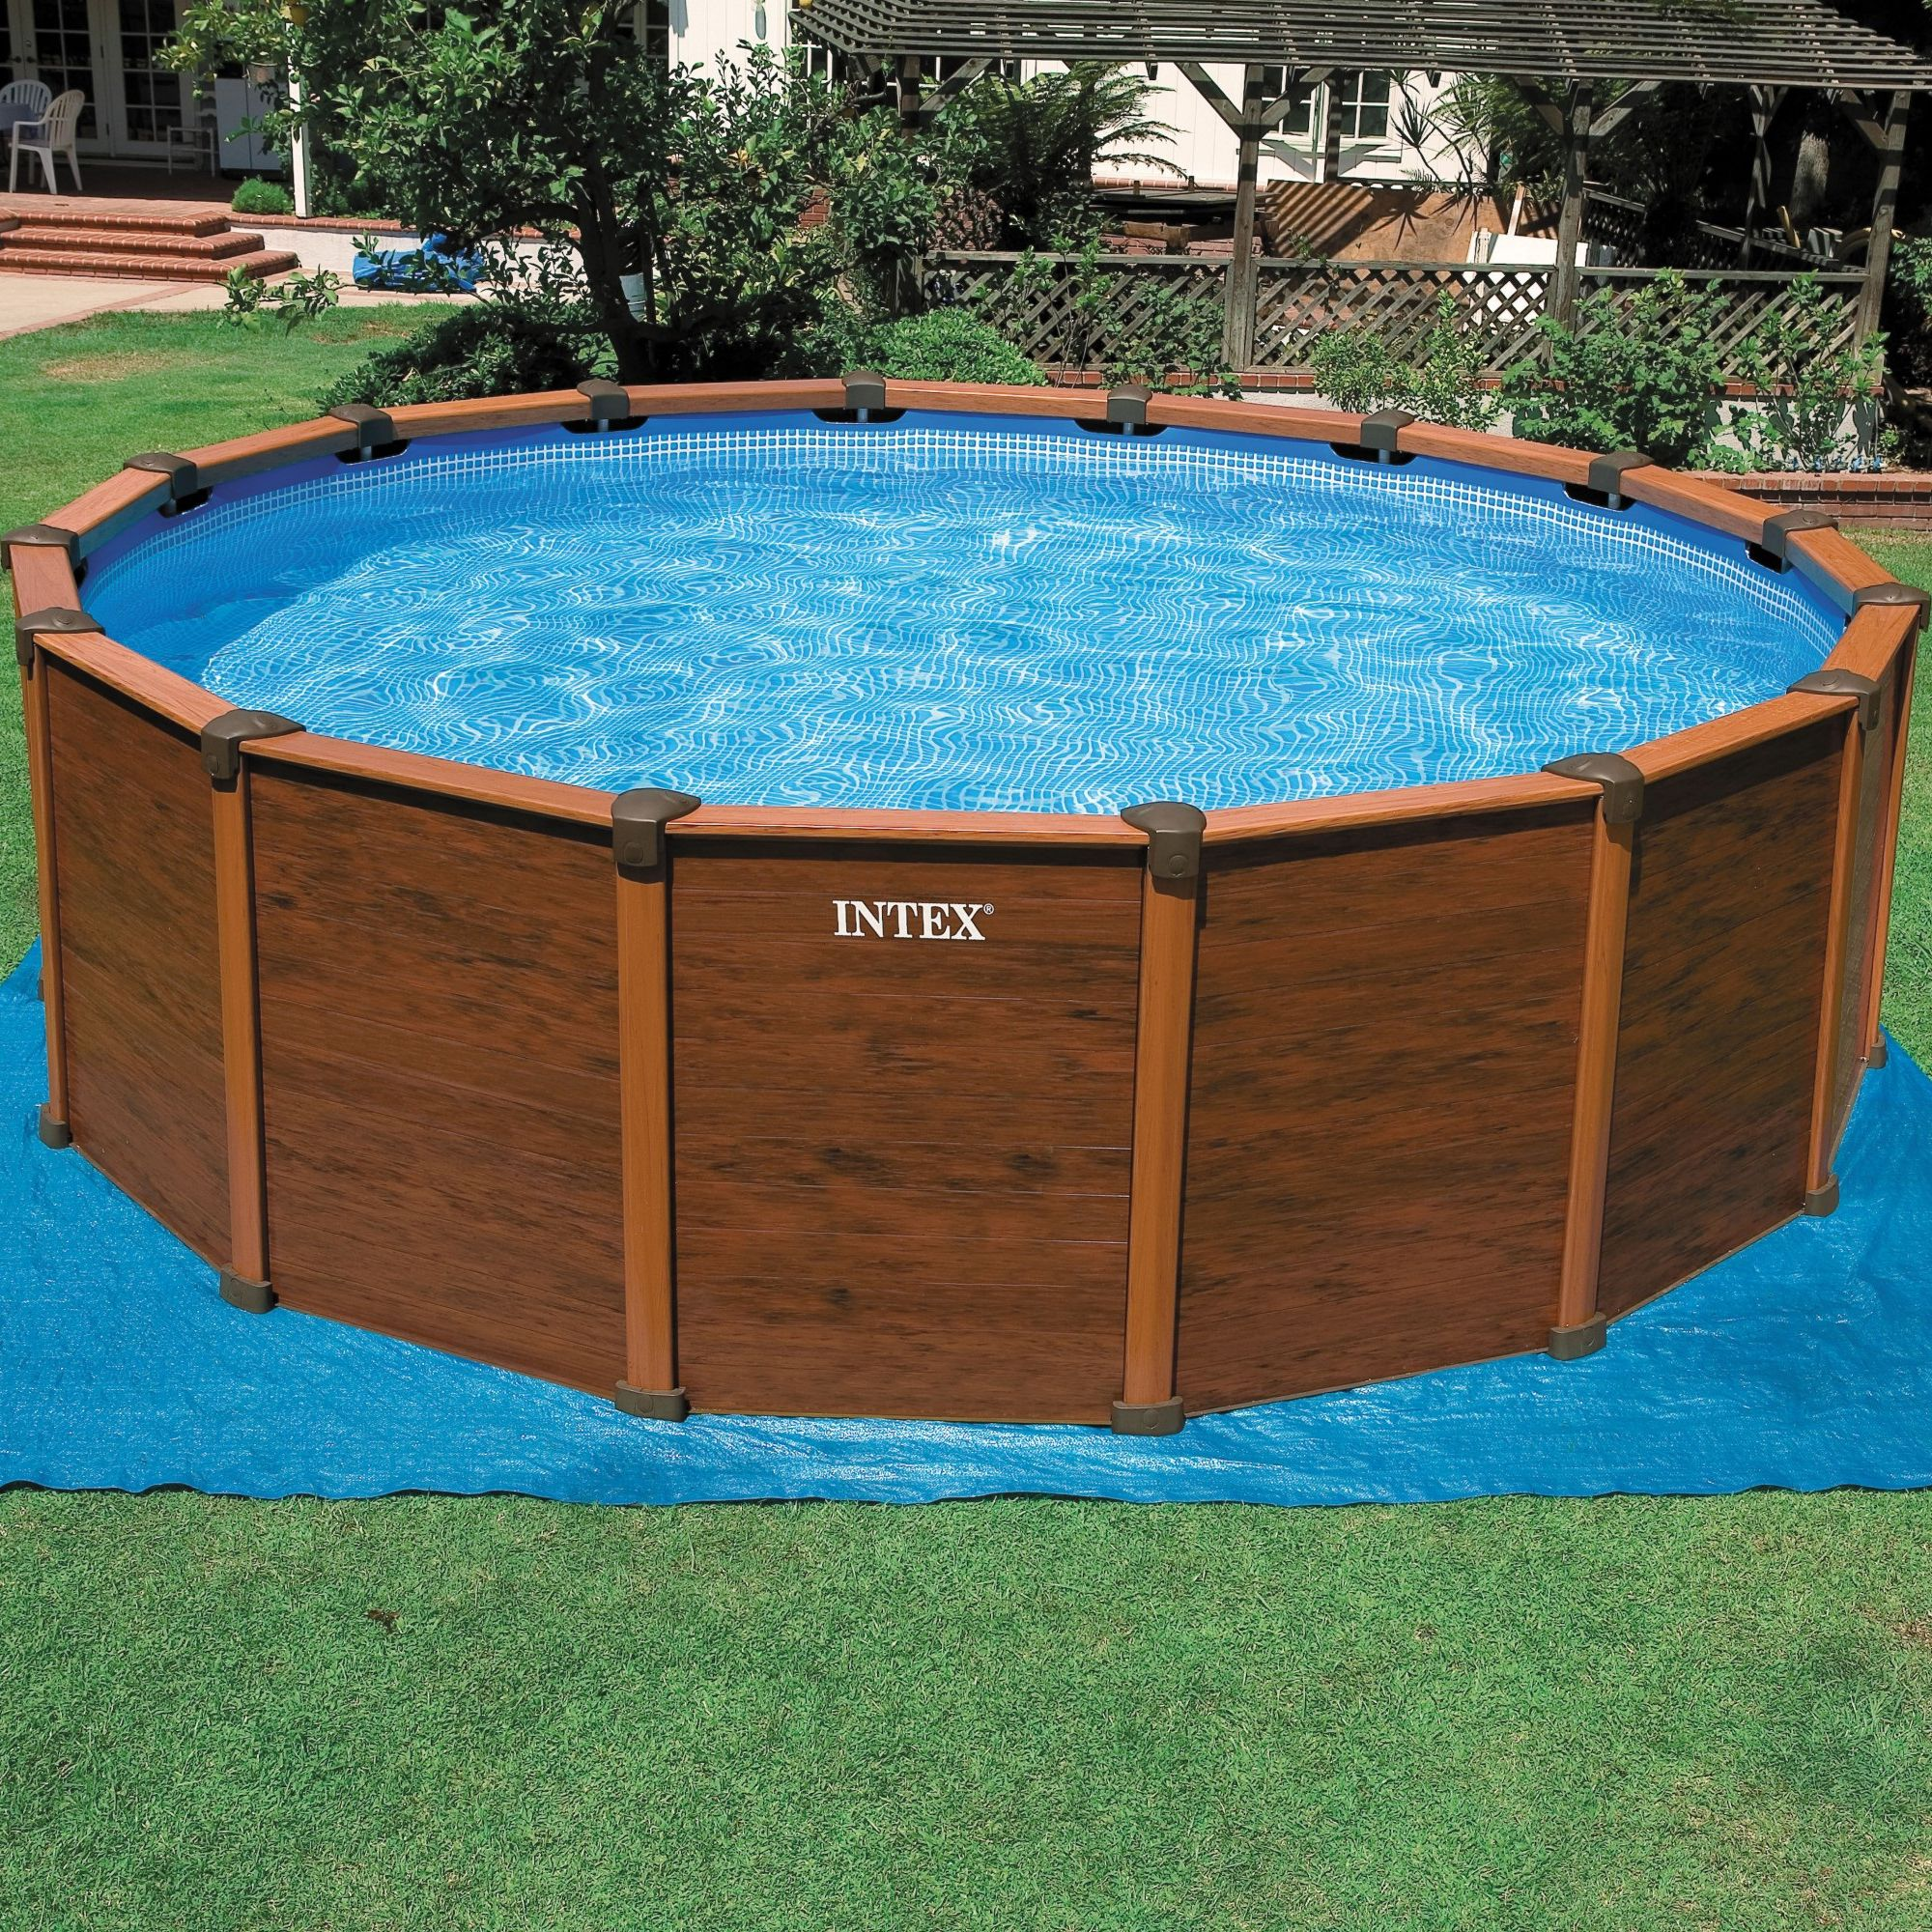 Intex Above Ground Swimming Pools